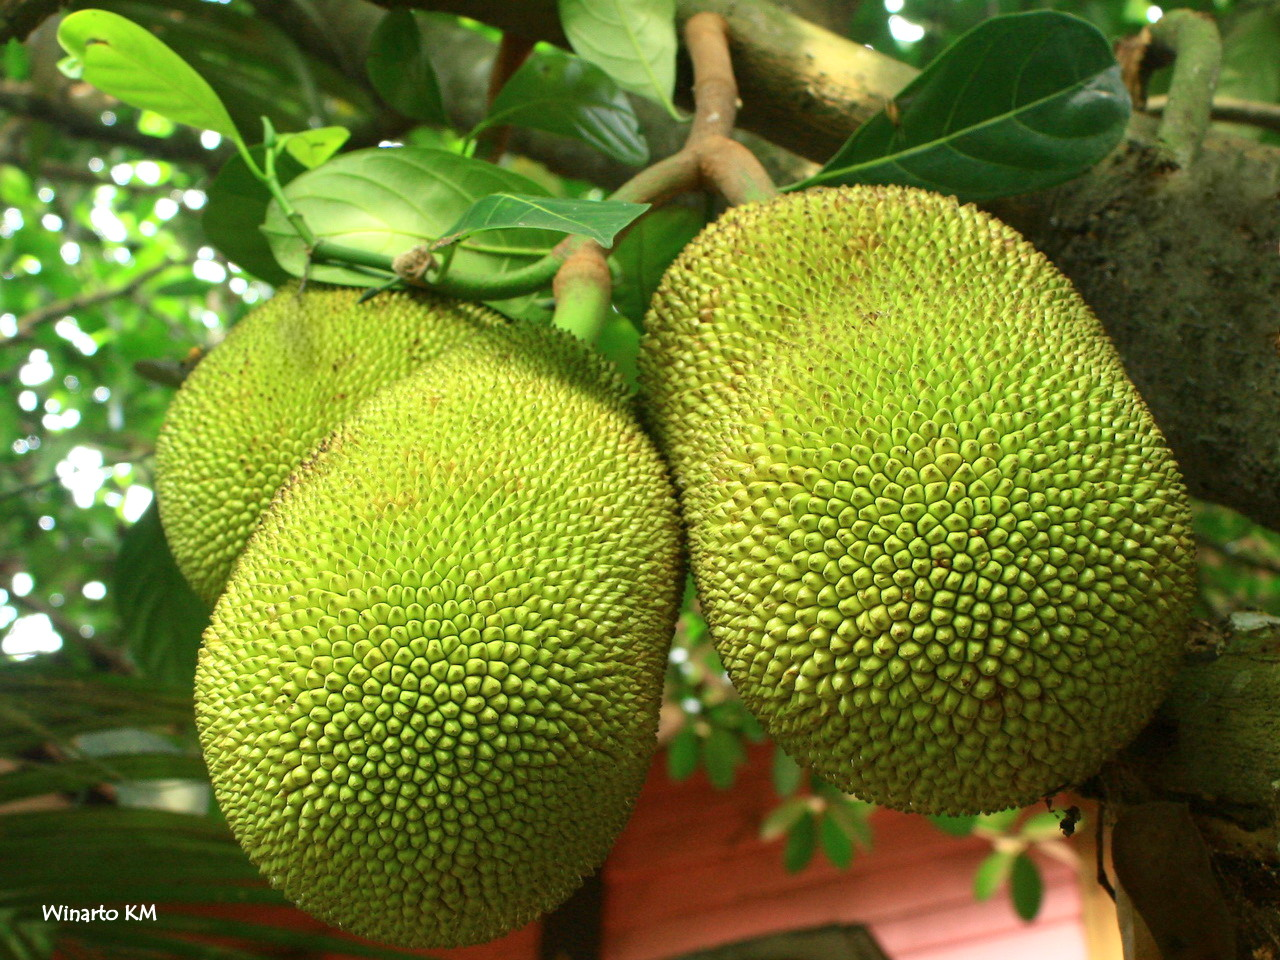 波羅蜜果。取自 Wikimedia Common https://commons.wikimedia.org/wiki/File:Jackfruit_wkm_2.jpg